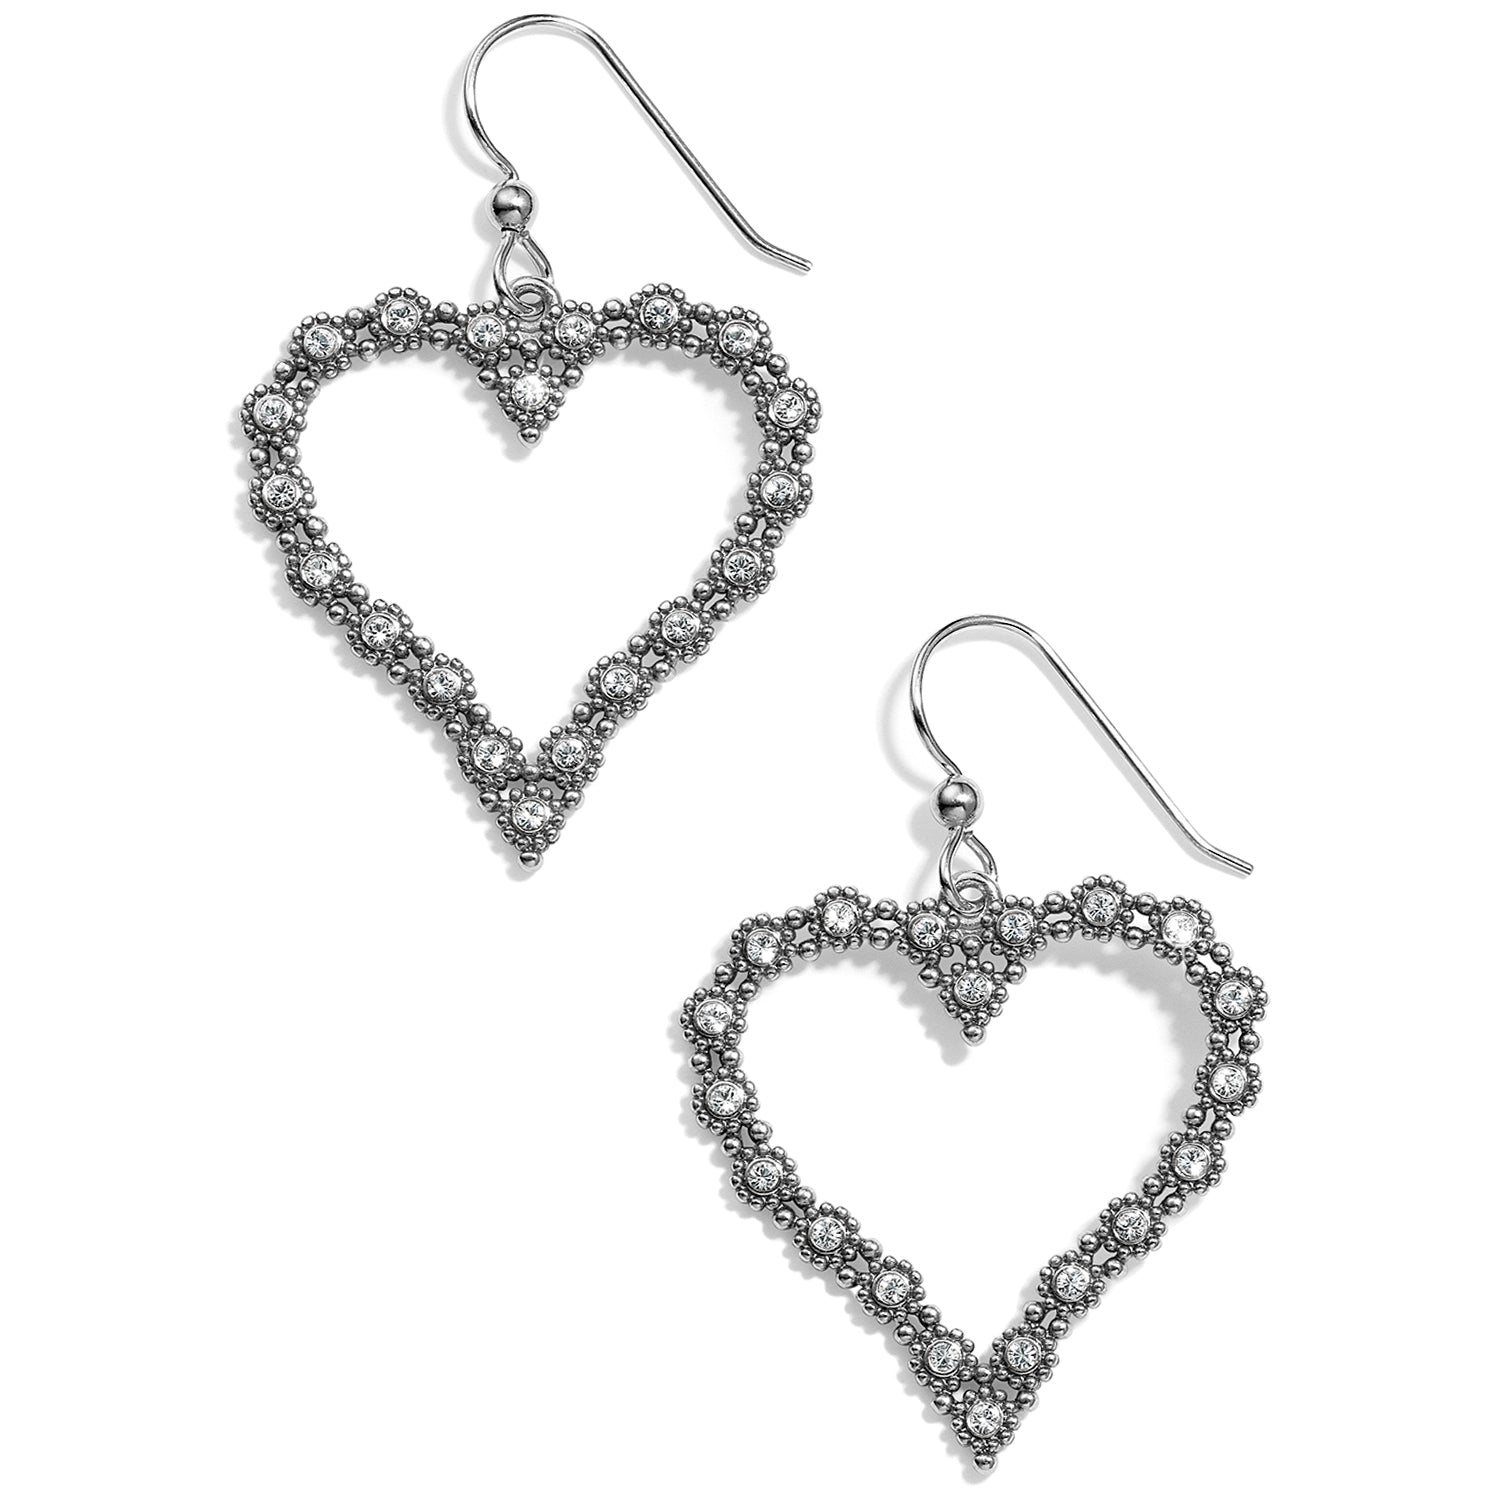 Twinkle Splendor Heart French Wire Earrings